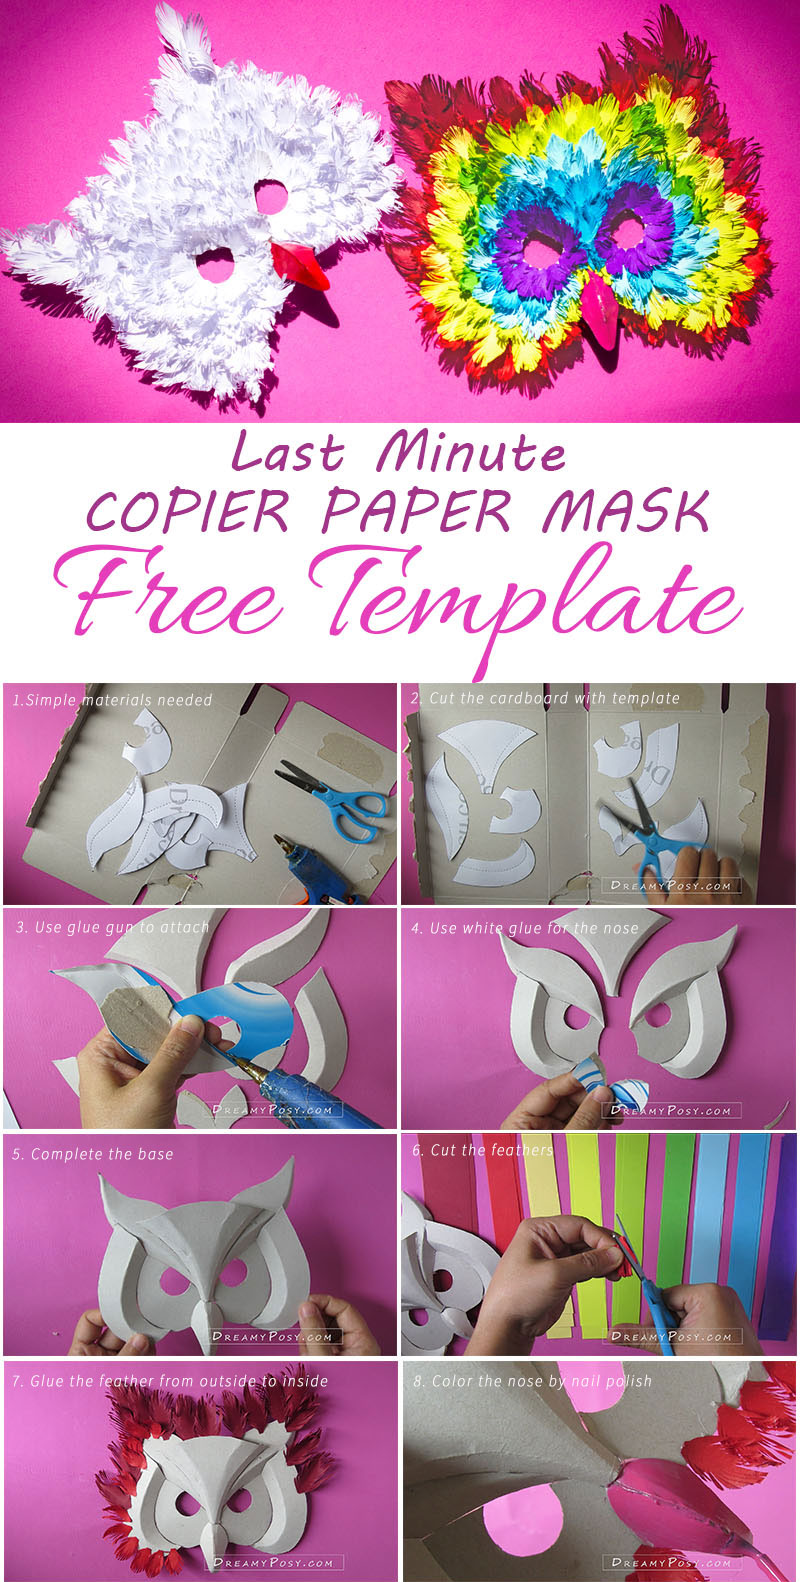 How To Make 3d Owl Paper Mask From Recycles Free Template